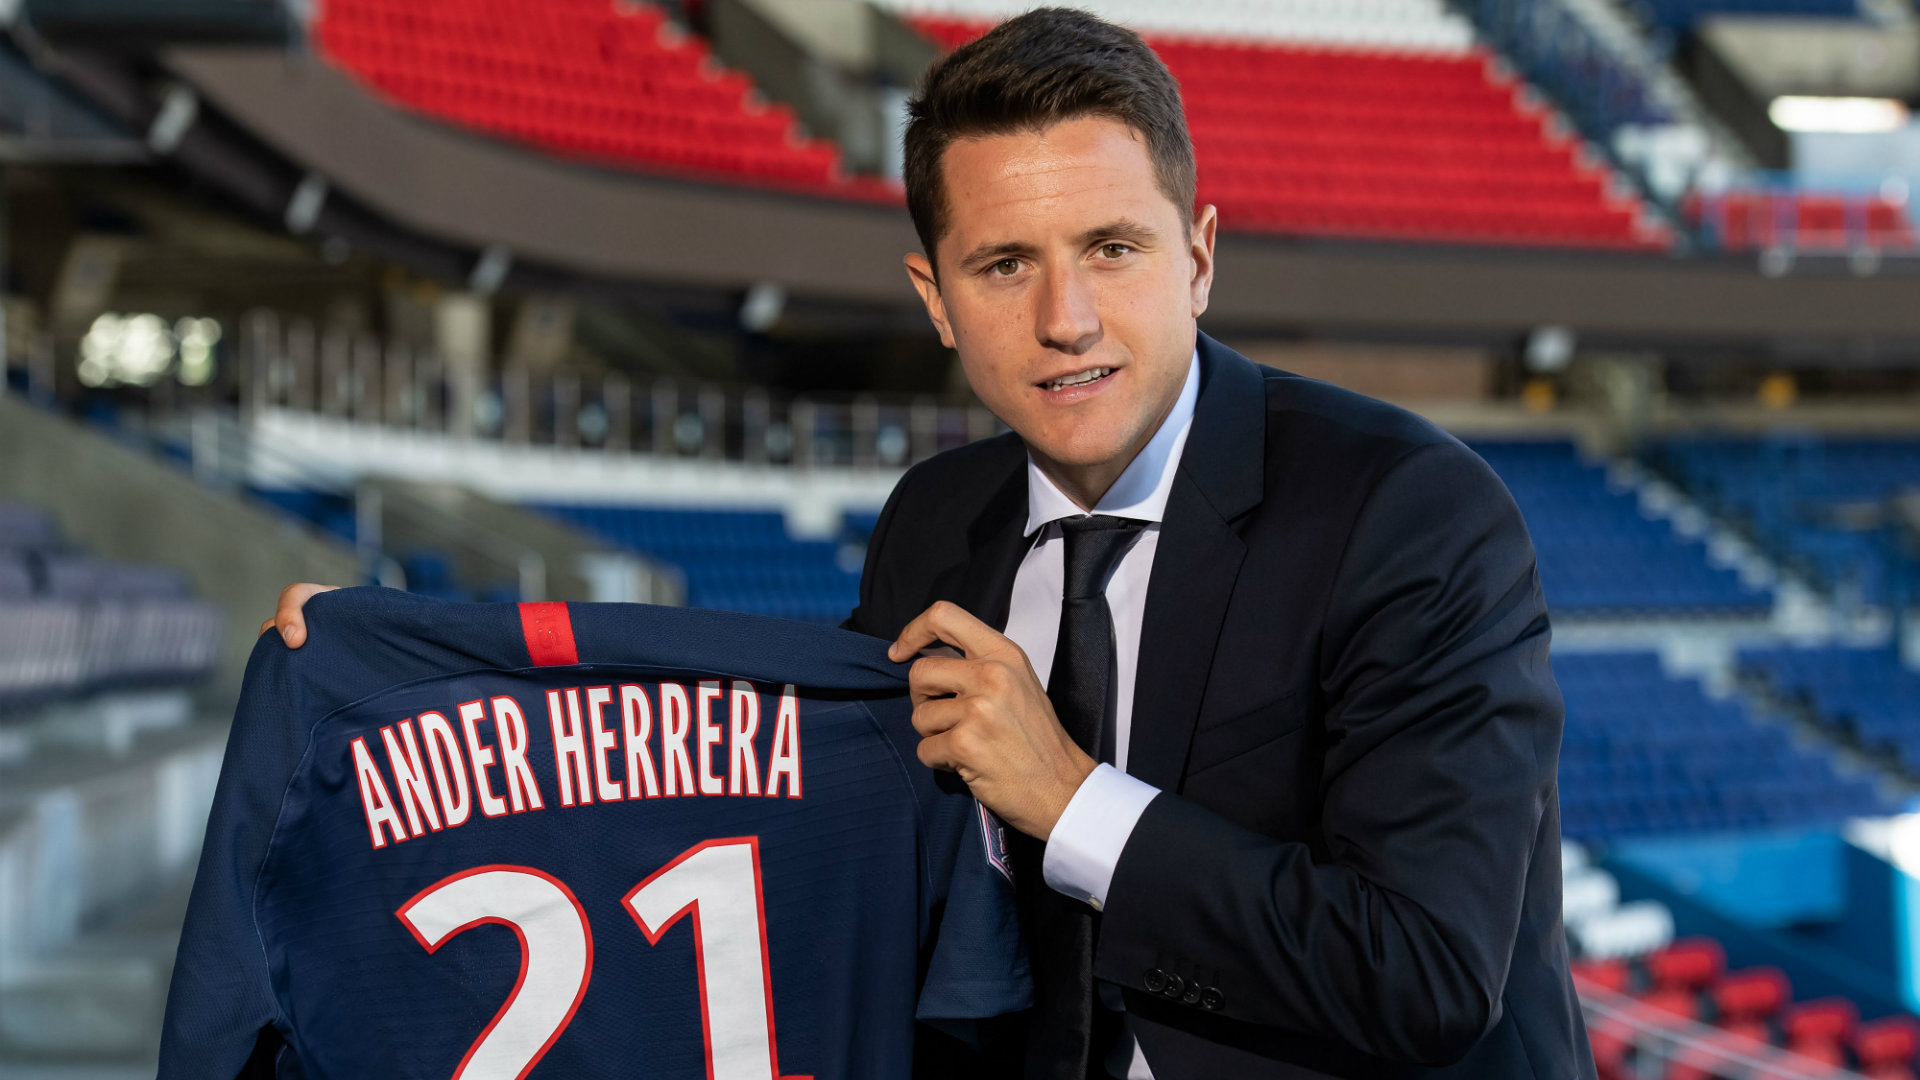 Ander Herrera says football not always 'considered most important thing' at Manchester United - Bóng Đá